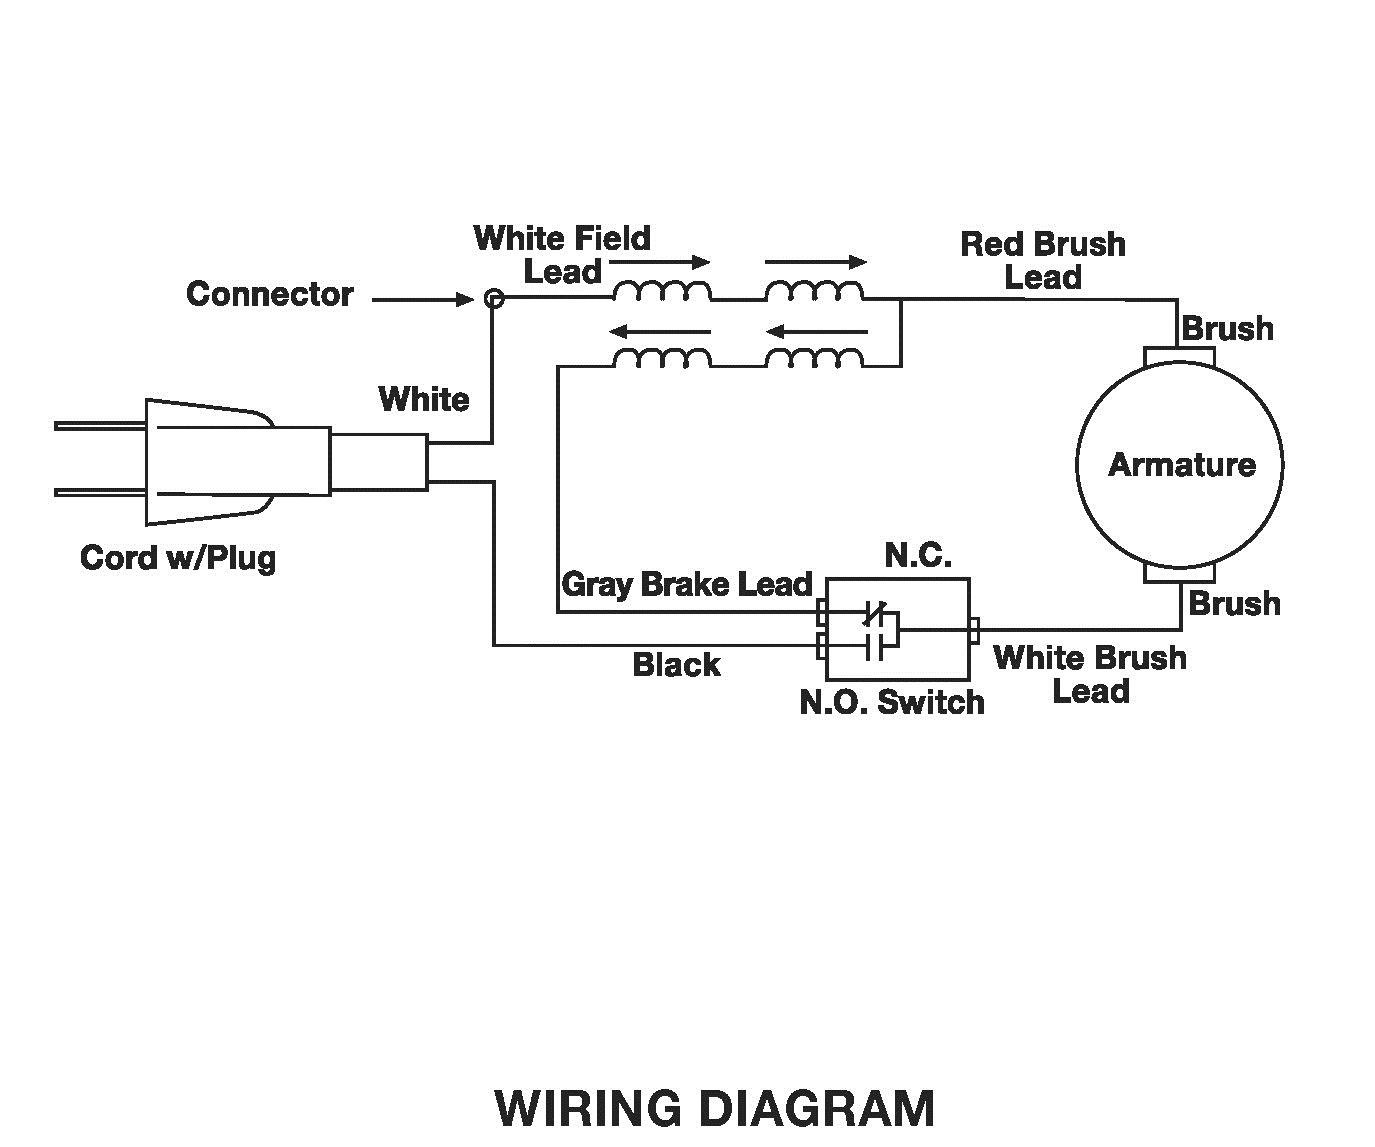 Ridgid table saw switch wiring diagram images wiring table and ridgid table saw switch wiring diagram ridgid r4513 wiring diagram ridgid ms1250lza parts master tool repair greentooth Image collections